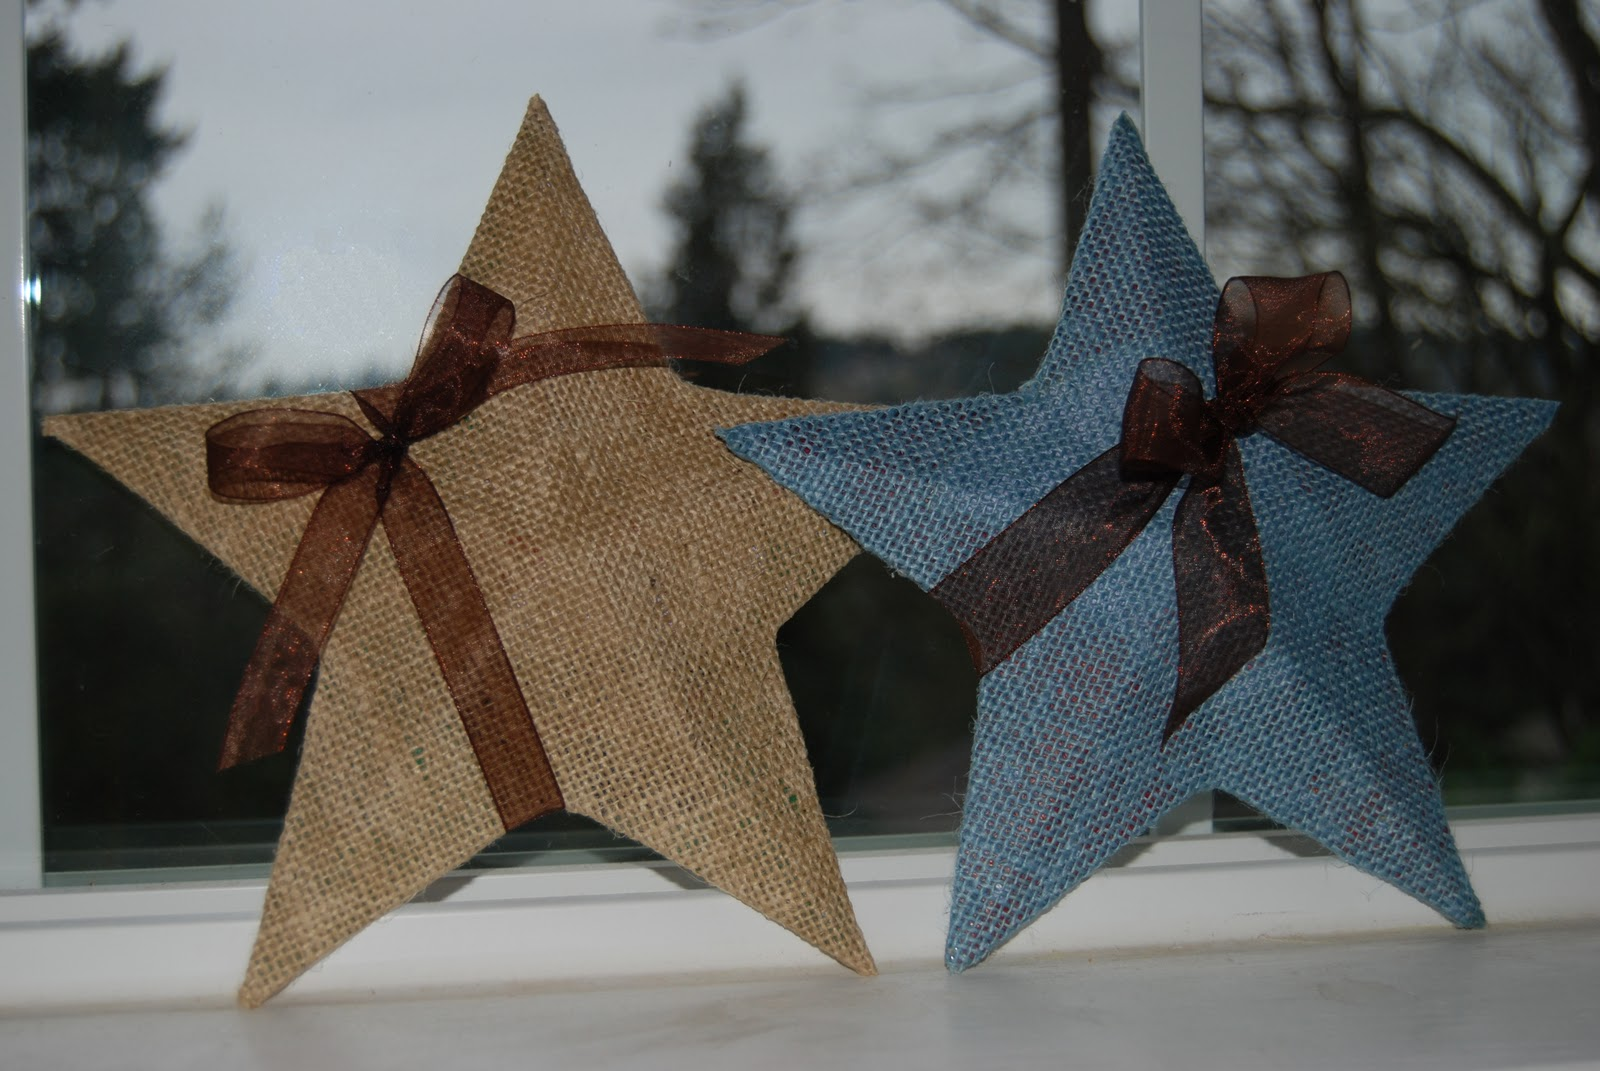 Nap time crafts burlap stars for Crafts made with burlap